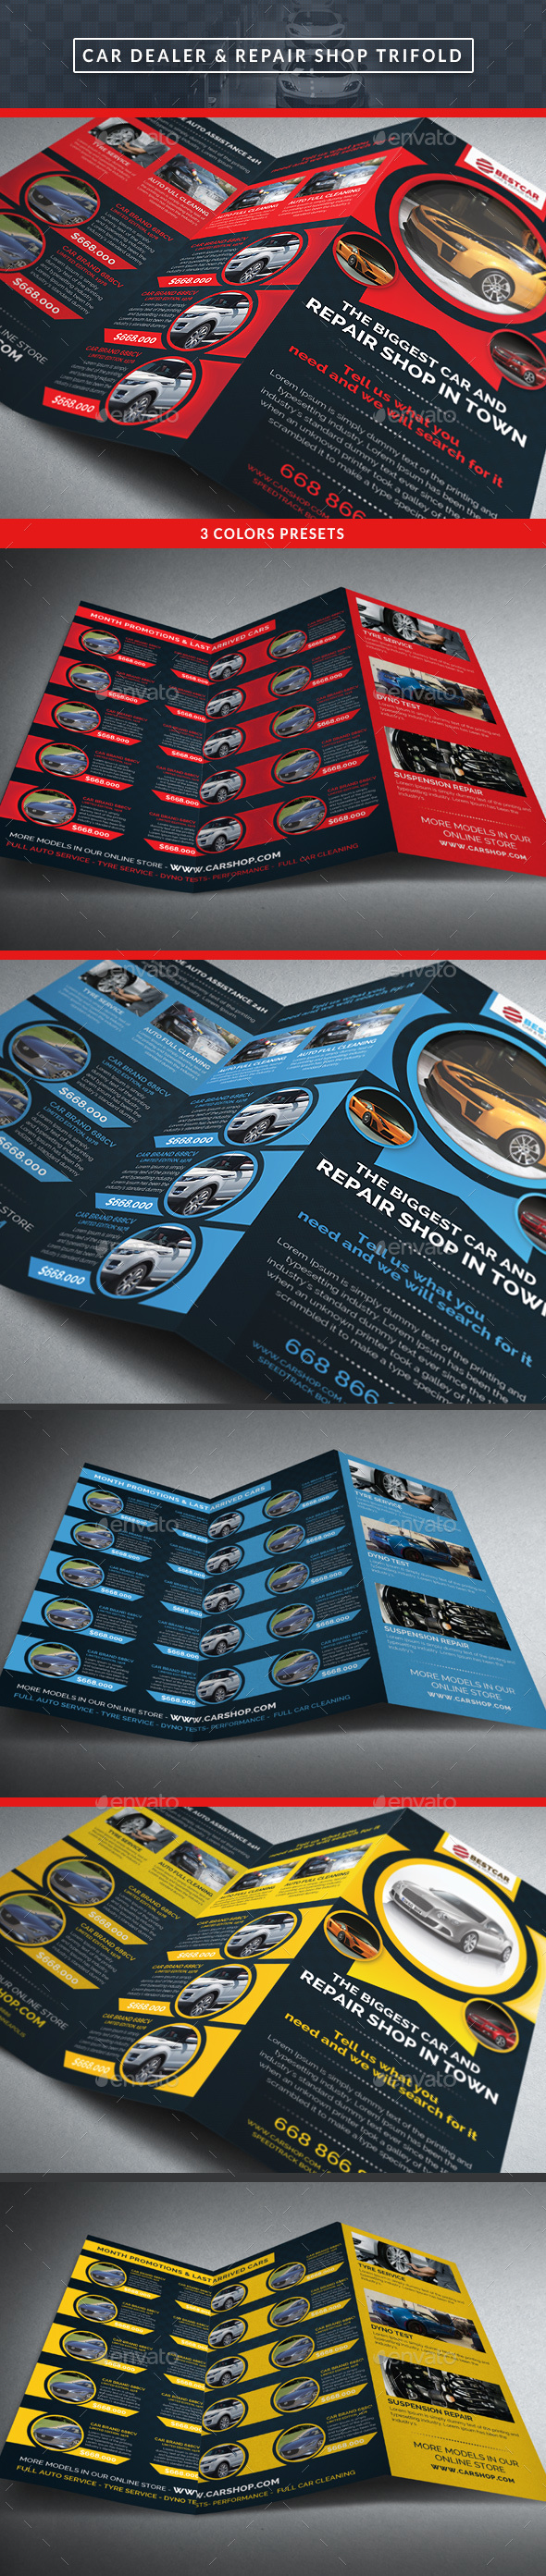 Car Dealer & Auto Services Trifold Brochure - Brochures Print Templates